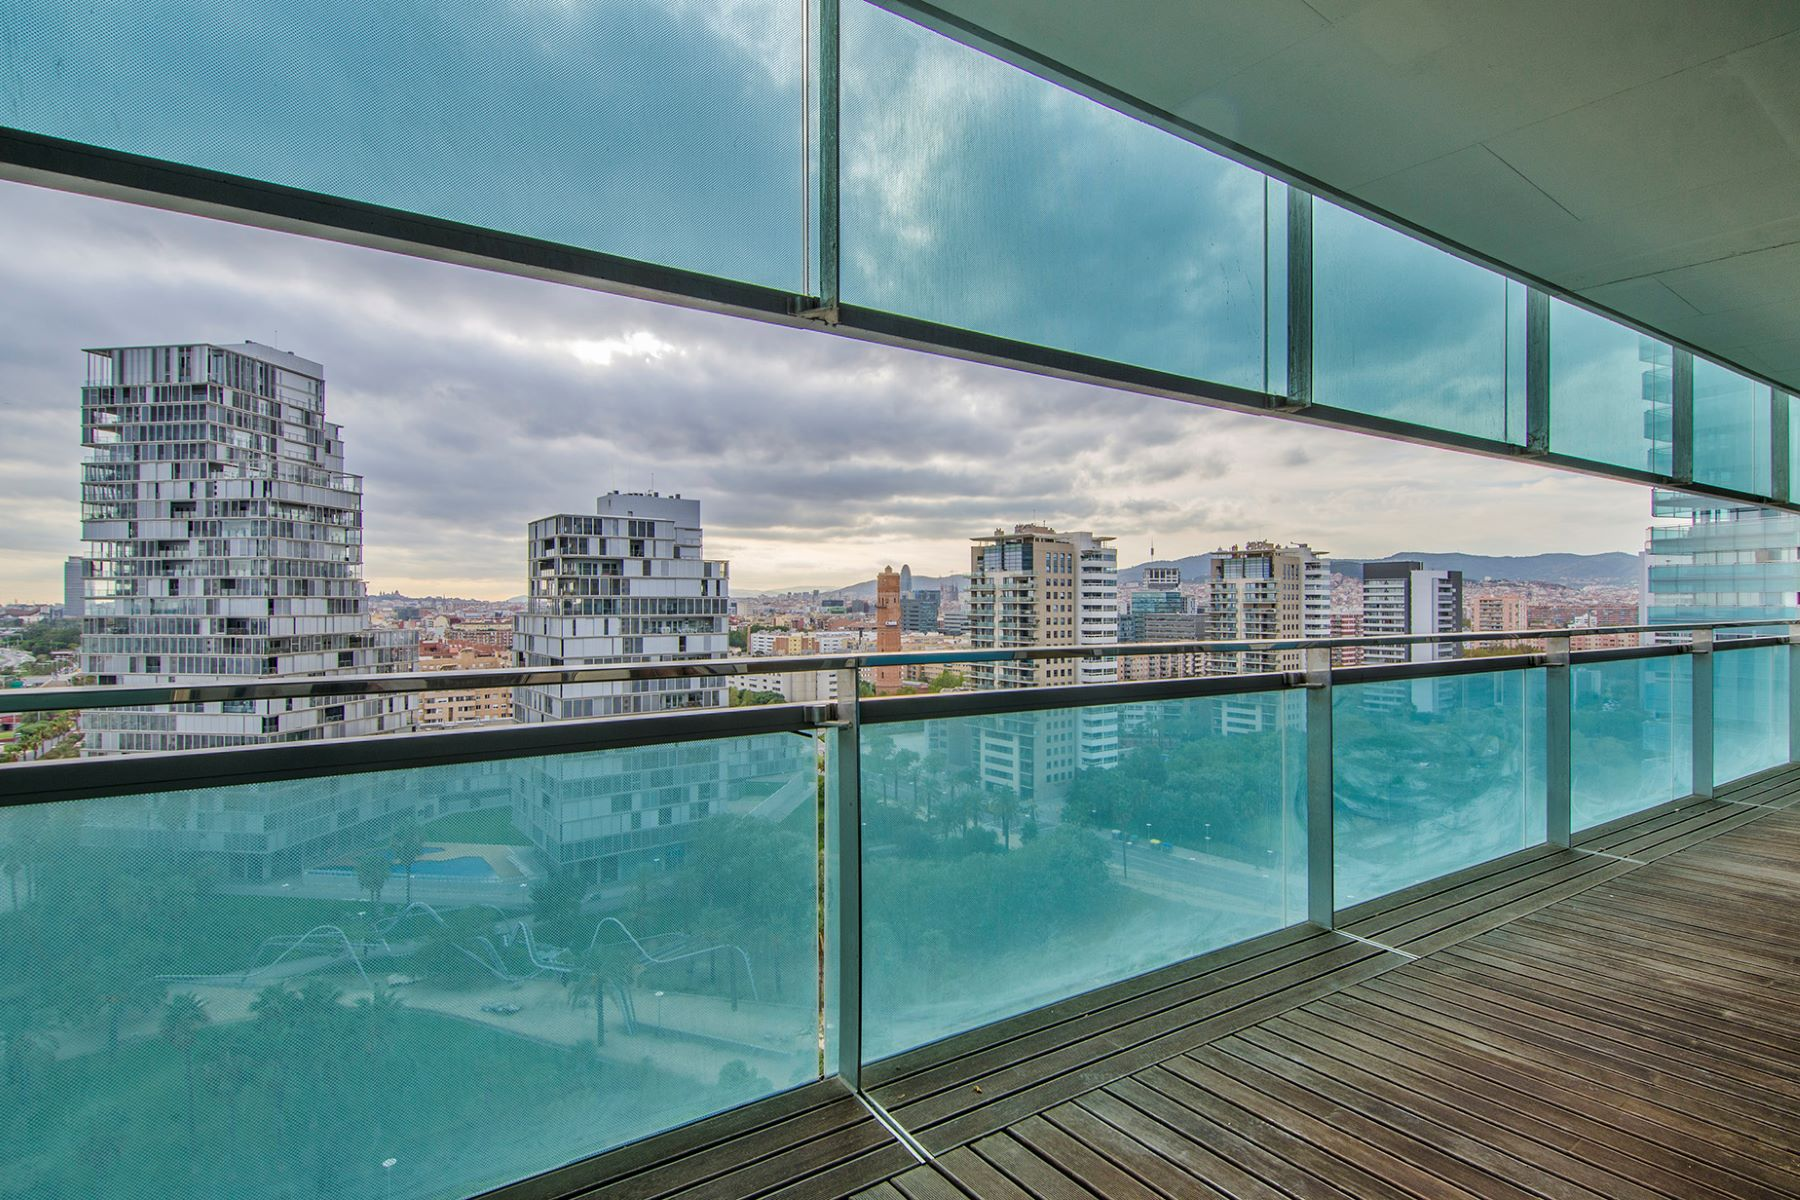 Appartement pour l Vente à Magnificent Apartment with Spectacular Views in Diagonal Mar, Barcelona Barcelona City, Barcelona, 08019 Espagne